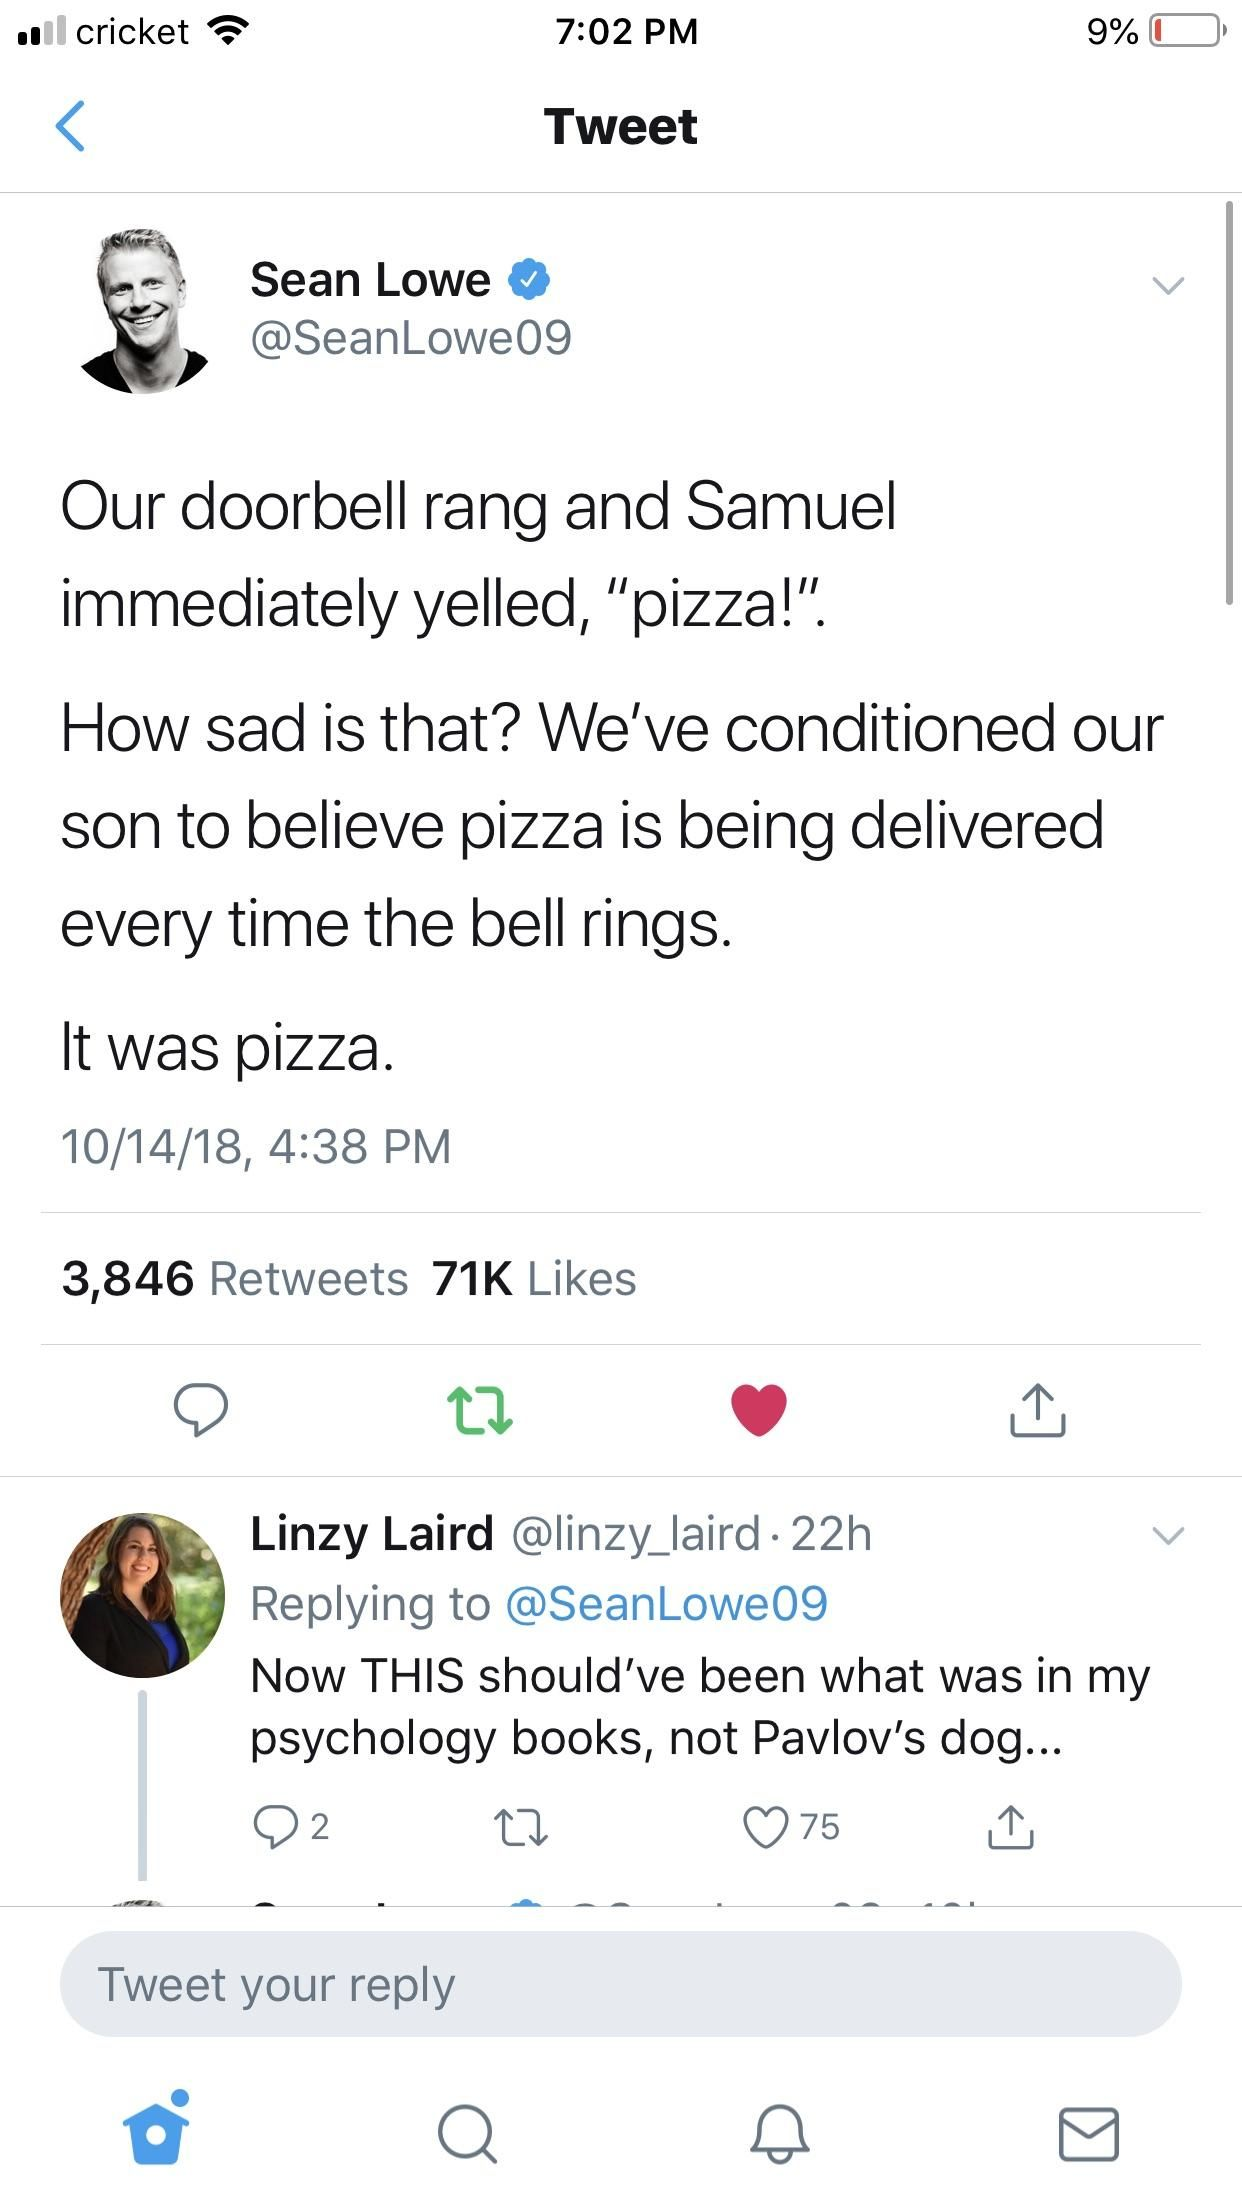 It was pizza.